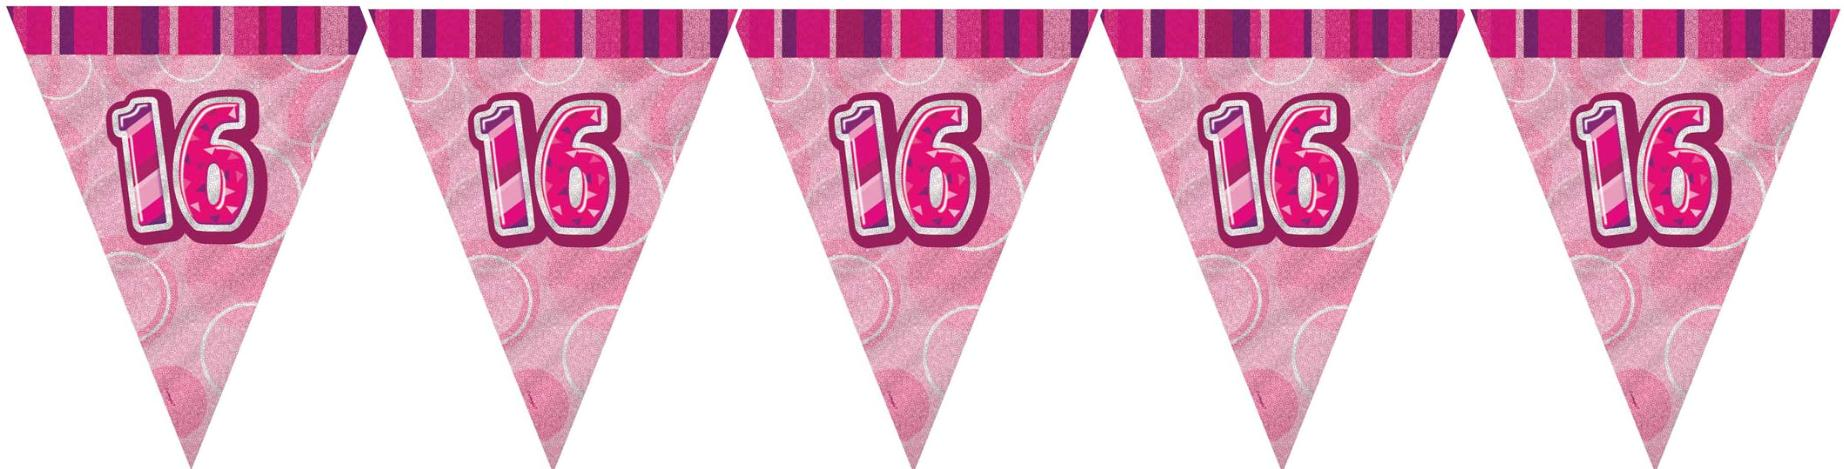 16th birthday banners ; pink-glitz-16th-birthday-flag-banner-965-p